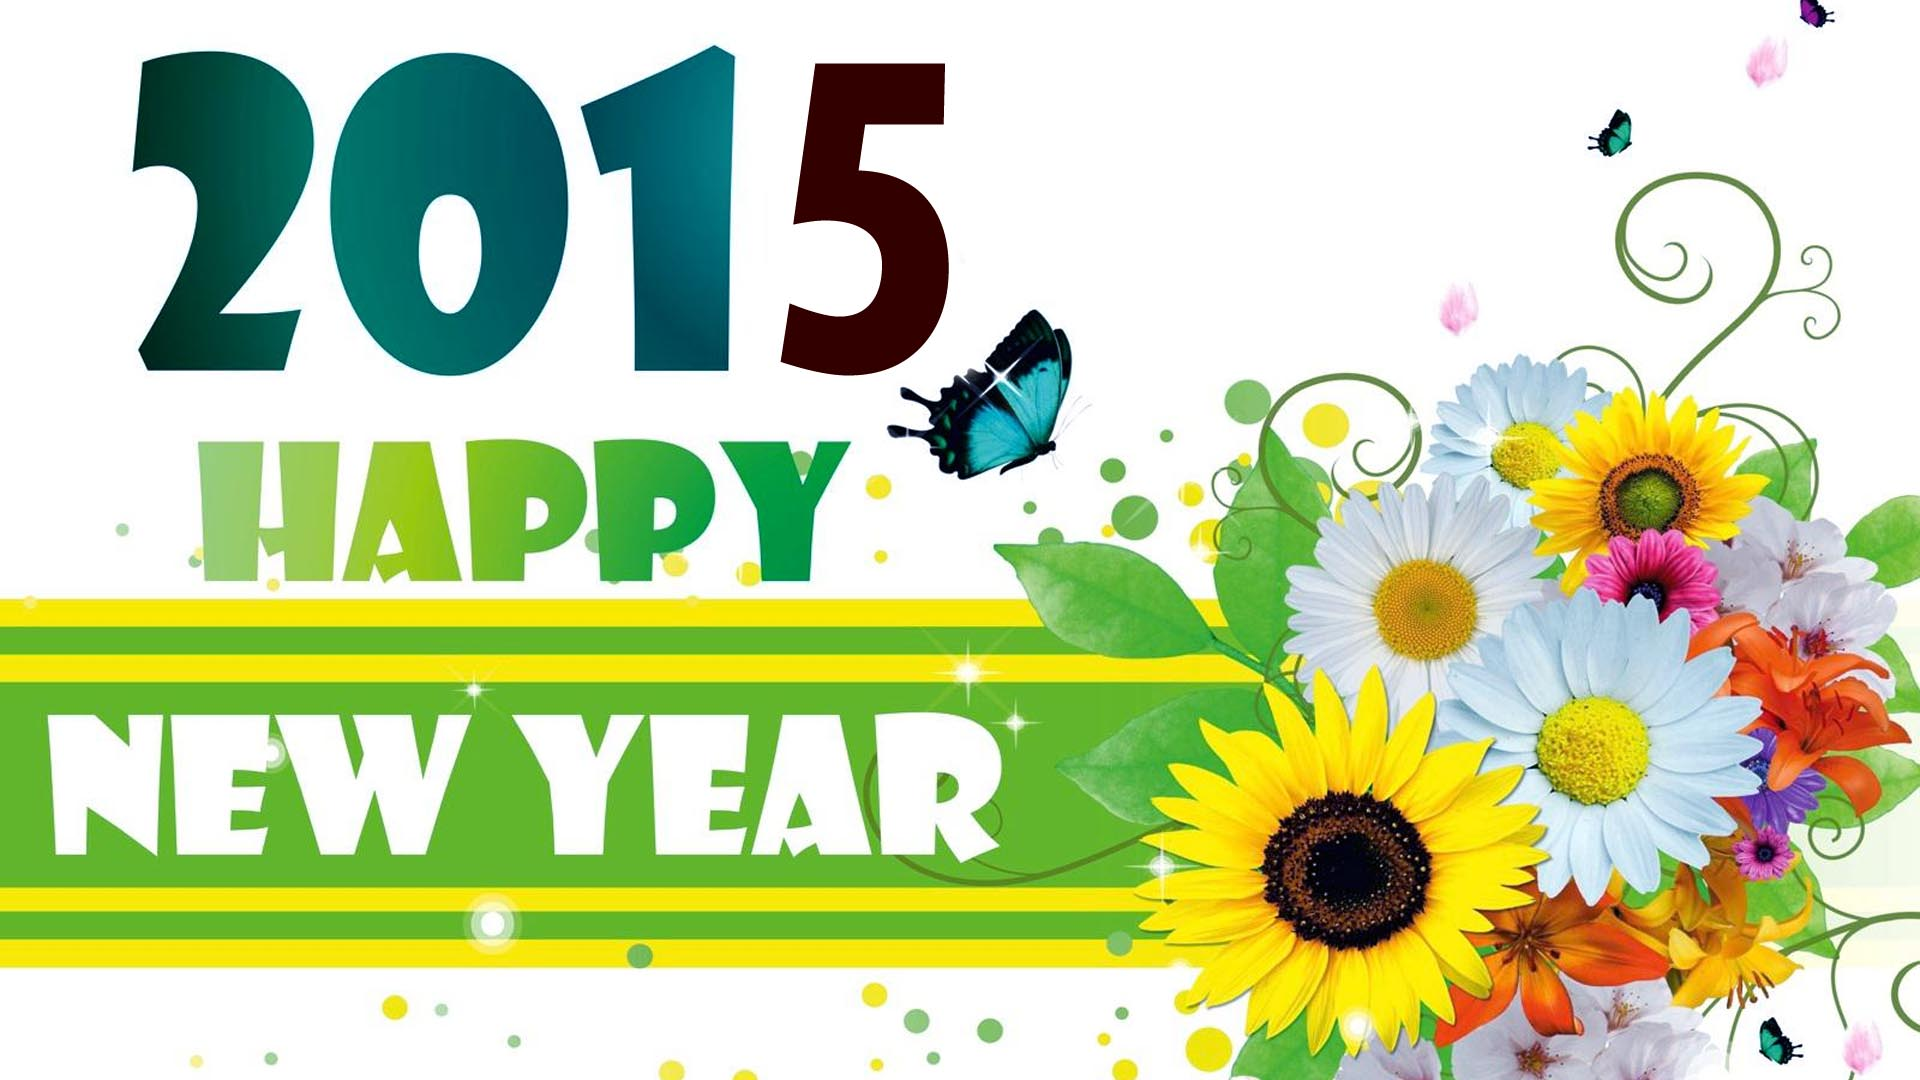 Wallpaper download new year 2015 - Best Hd Happy New Year 2015 Wallpapers For Your Desktop Pc Download